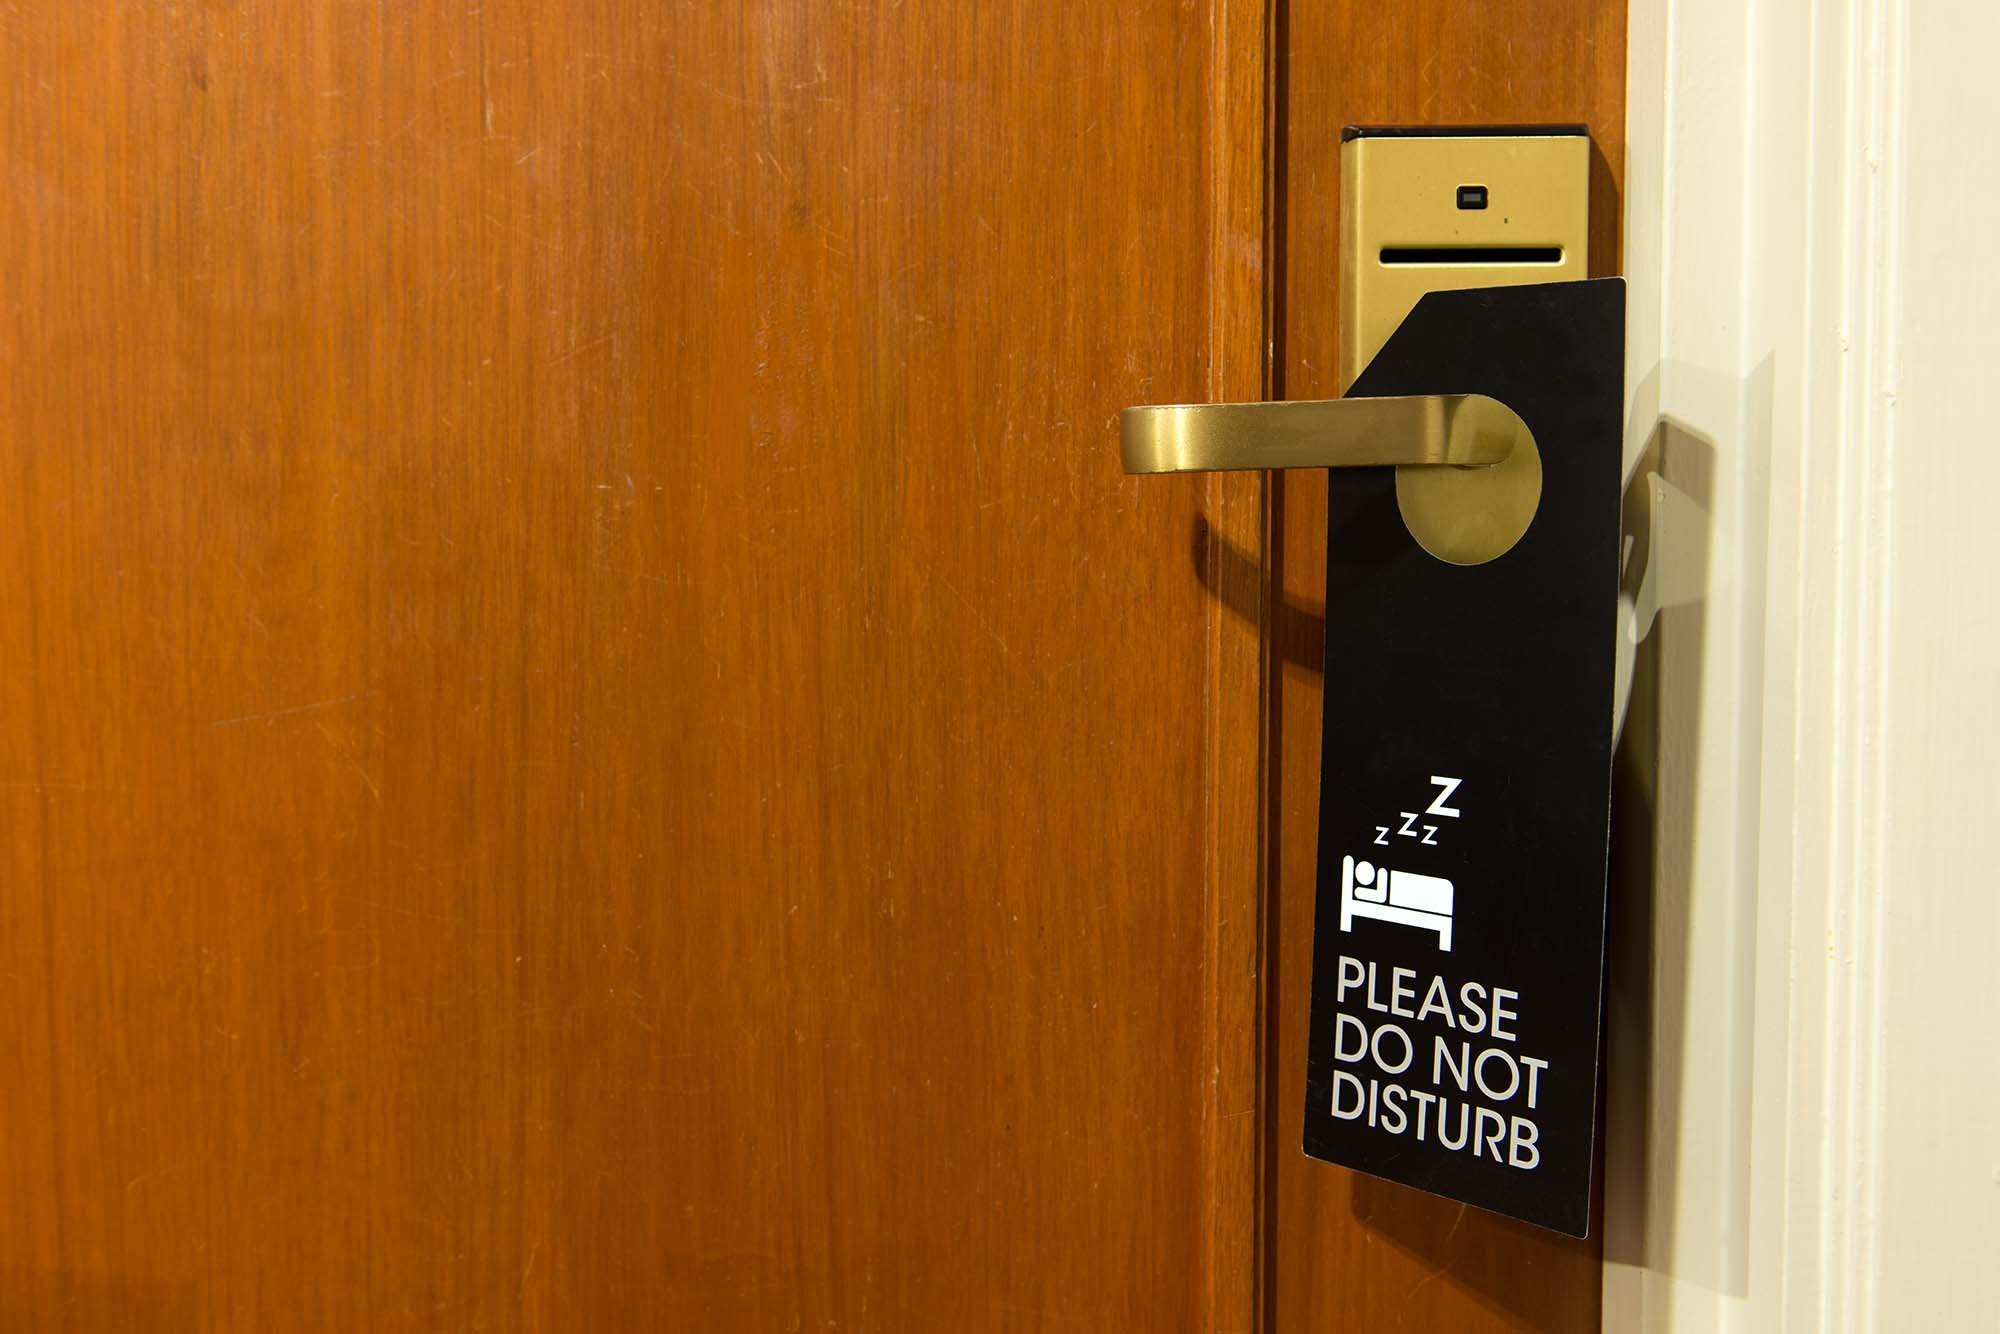 The chilling reason Disney World removed 'Do Not Disturb' signs